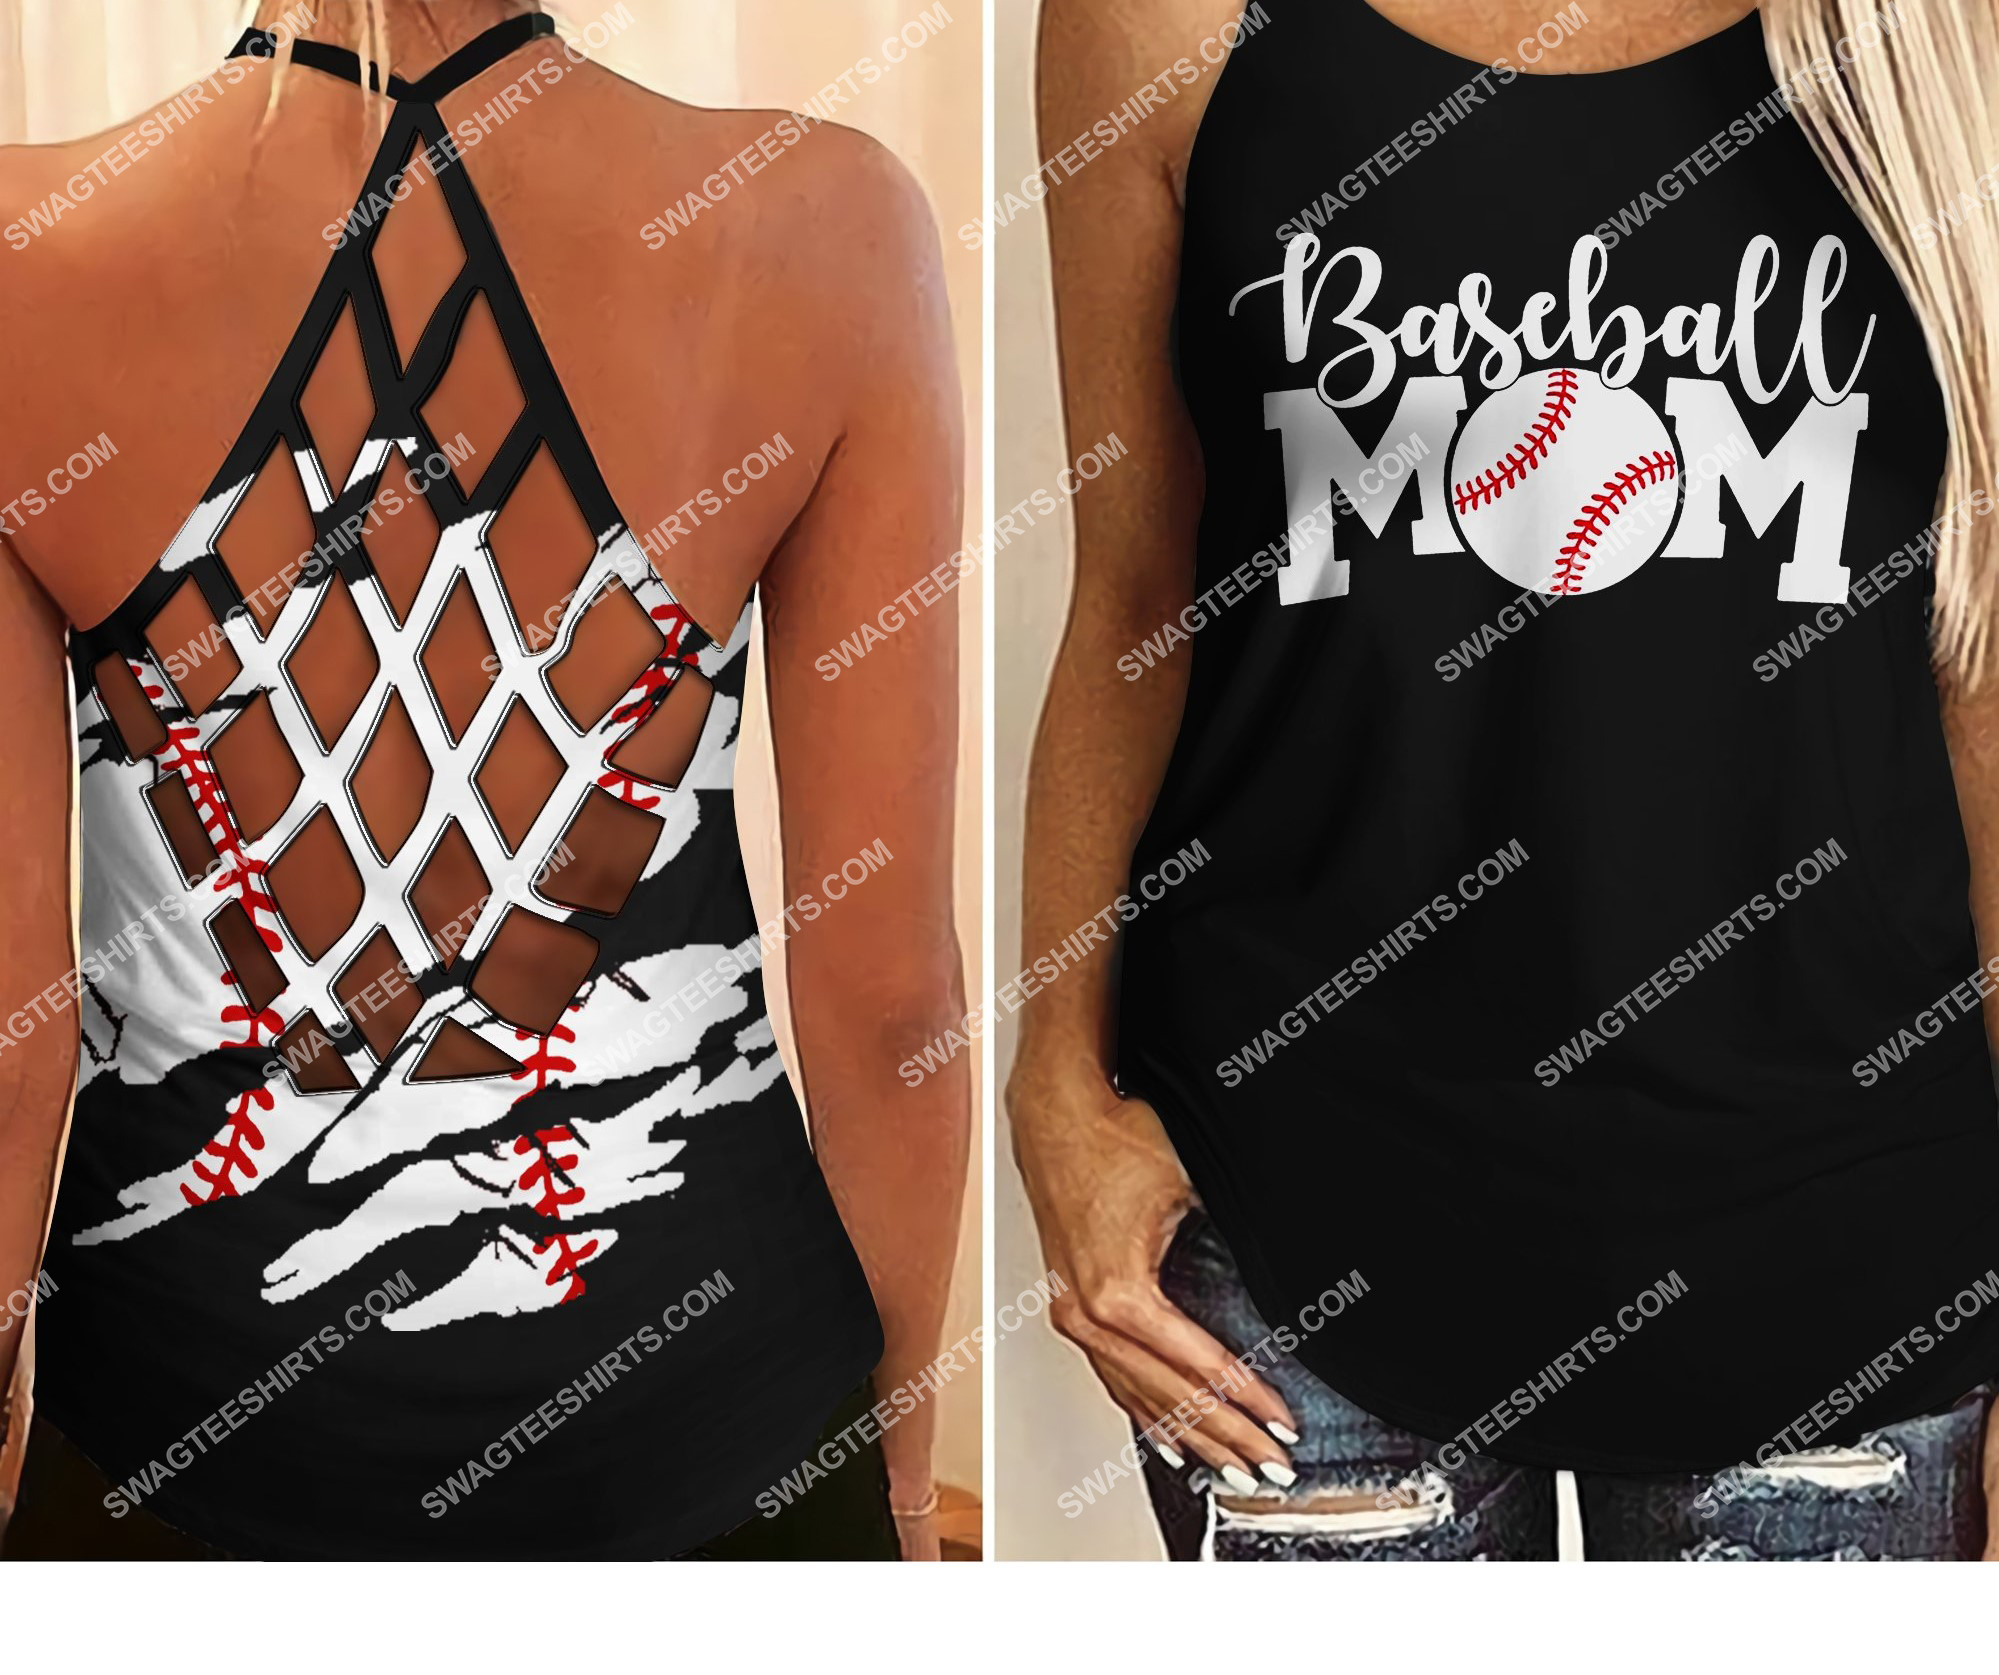 vintage baseball mom all over printed strappy back tank top 2 - Copy (2)